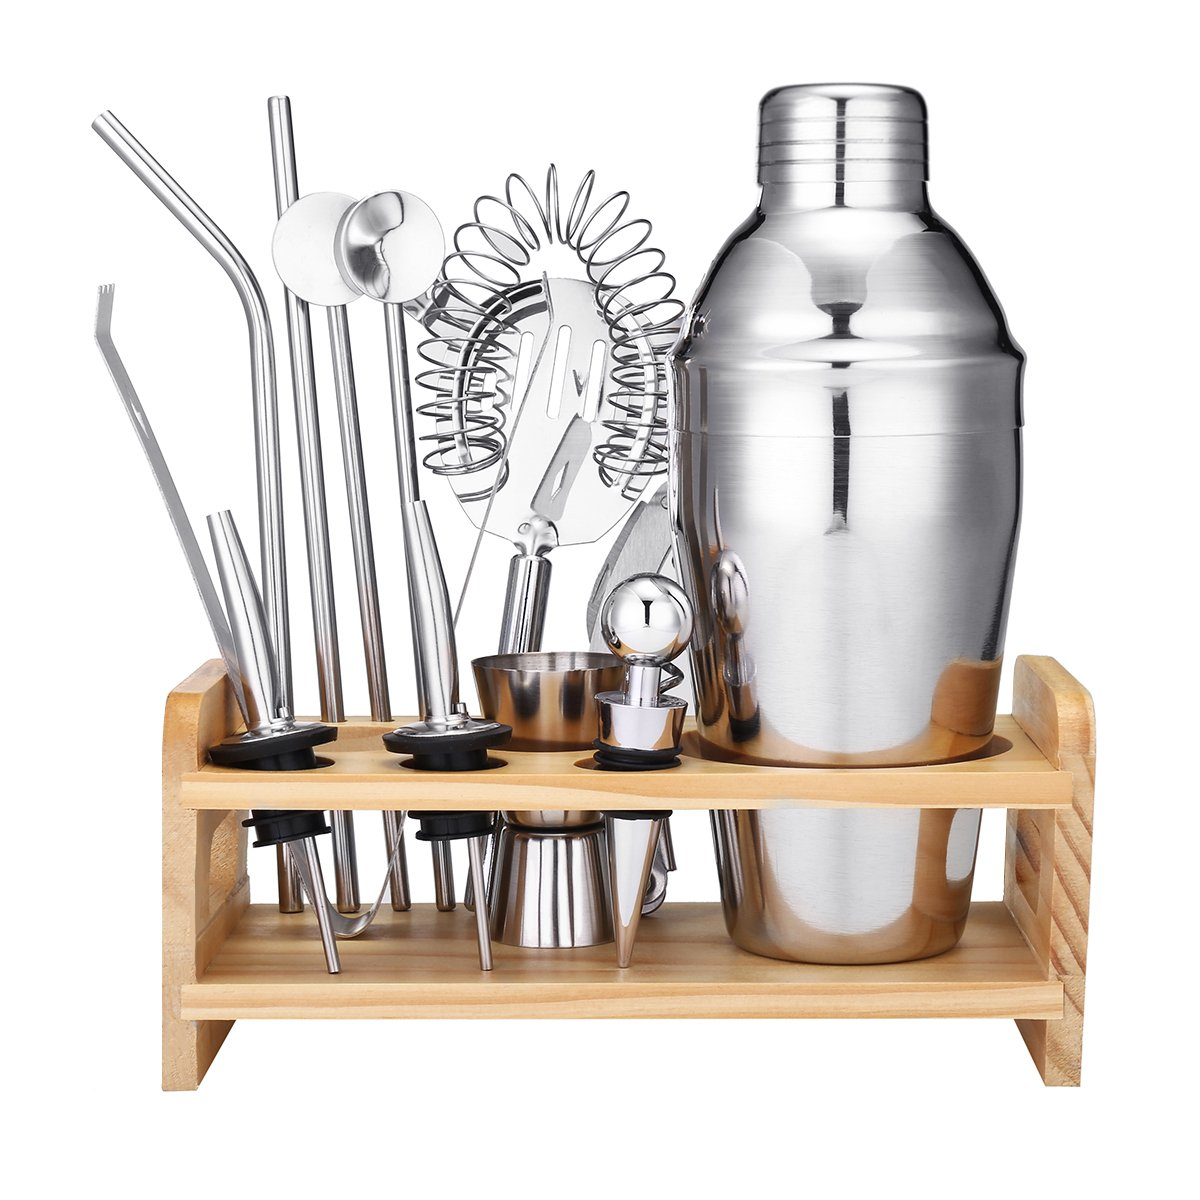 Godmorn Cocktail Shaker Set 13 Piece Home Bar Set Bartender Kit,18 oz Stainless Steel Martini Shaker with Wooden Stand,Double Jigger,Bottle Opener,2 Pourers,Bonus 20 Cocktail Recipes Booklet